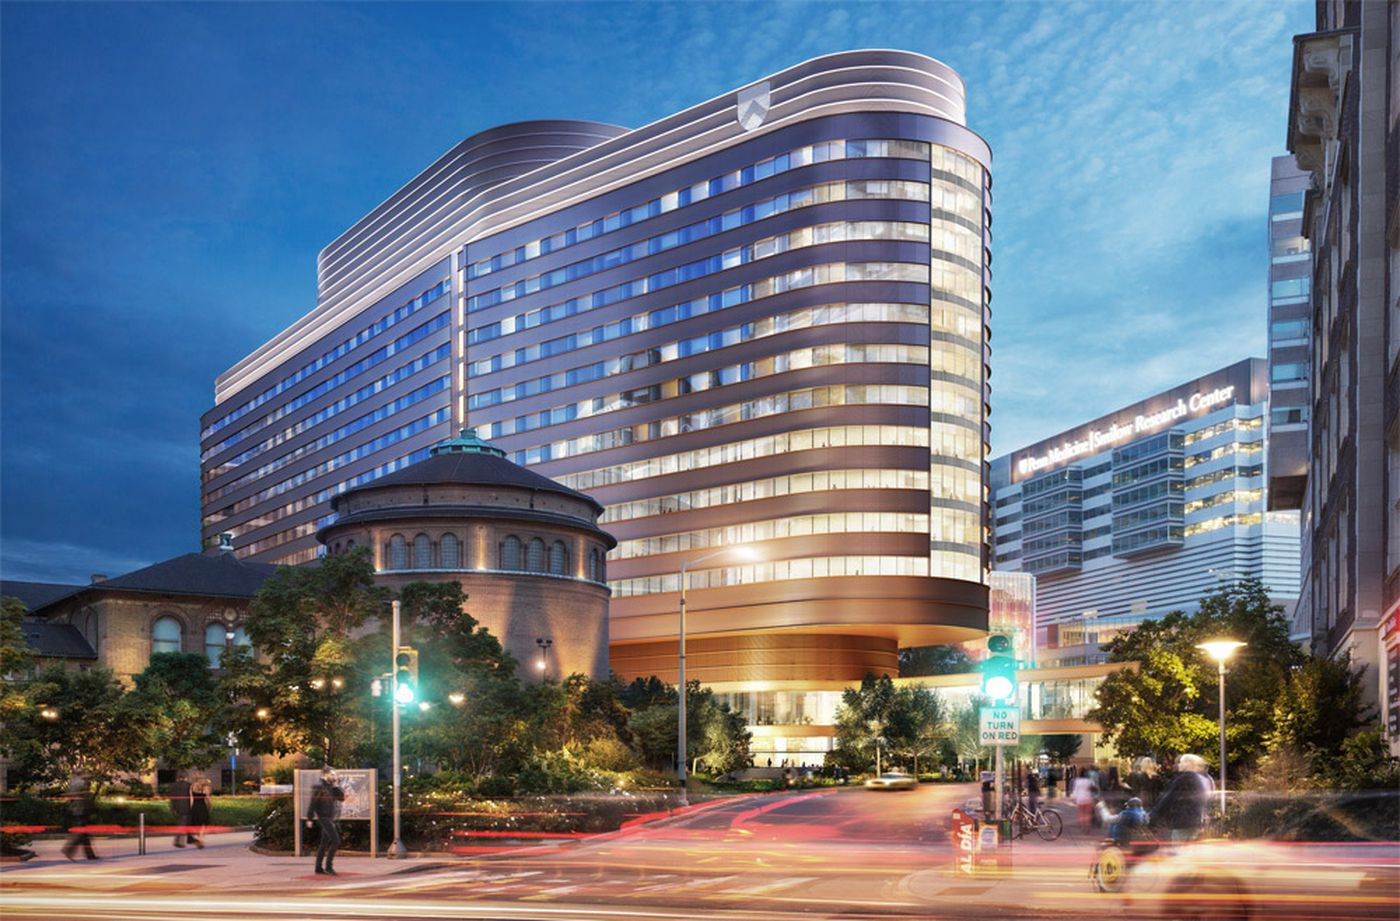 Penn Medicine's Pavilion, which is currently under construction, will house 500 private patient rooms and 47 operating rooms in a 1.5 million square foot, 17-story facility across from the Hospital of University of Pennsylvania and adjacent to the Perelman Center for Advanced Medicine.